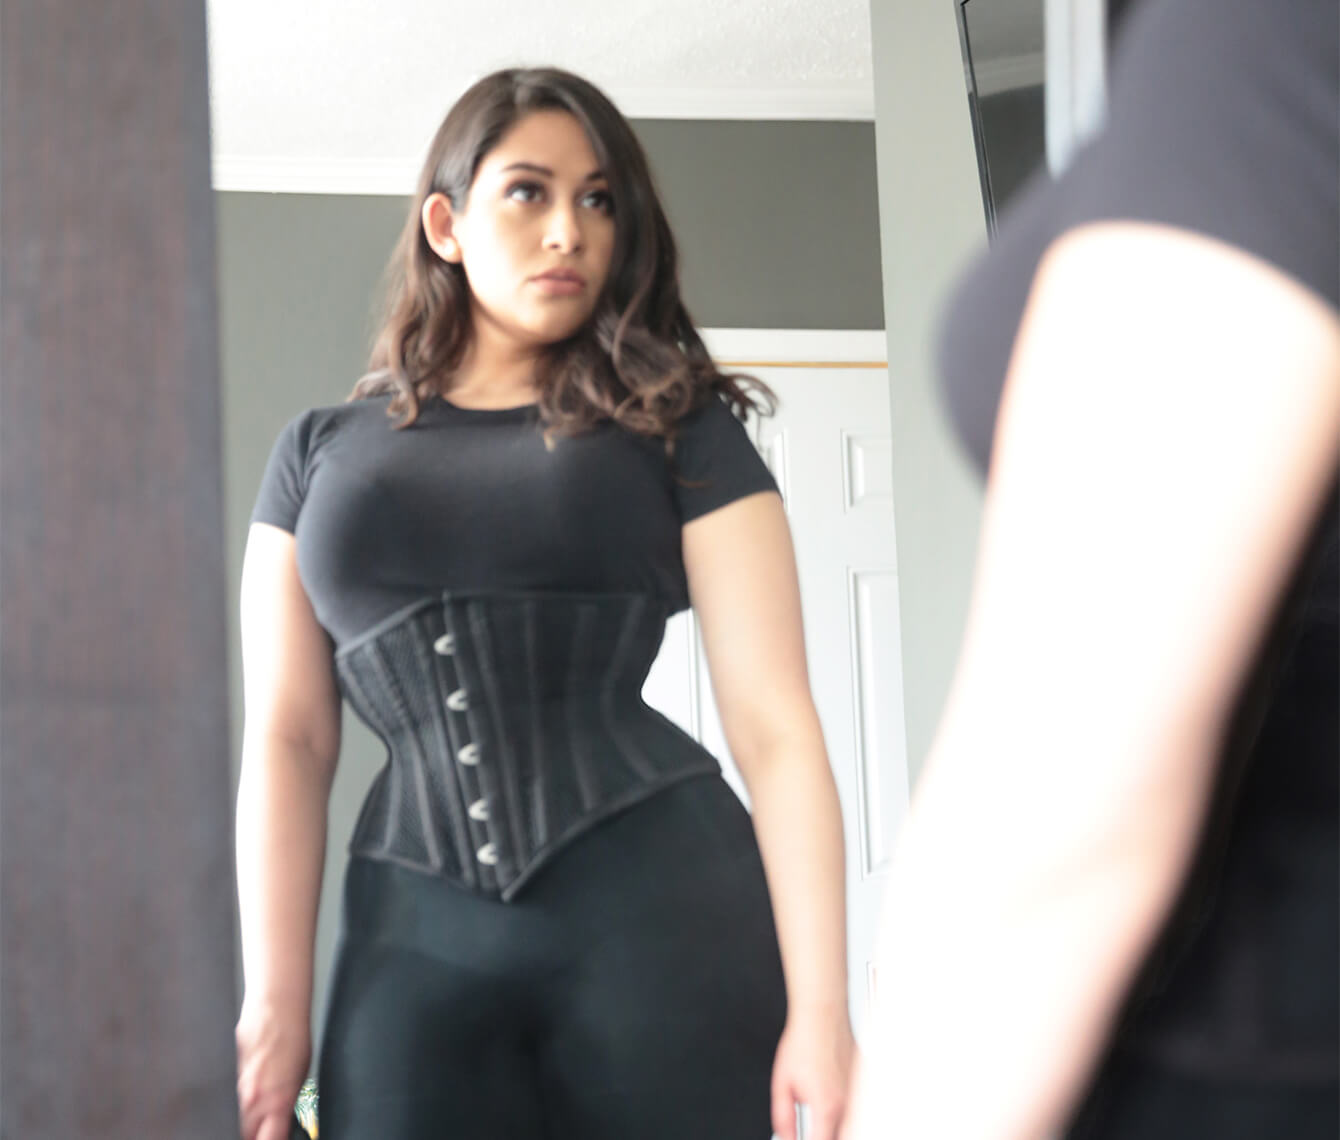 b5d4db503a IS WAIST TRAINING RIGHT FOR ME